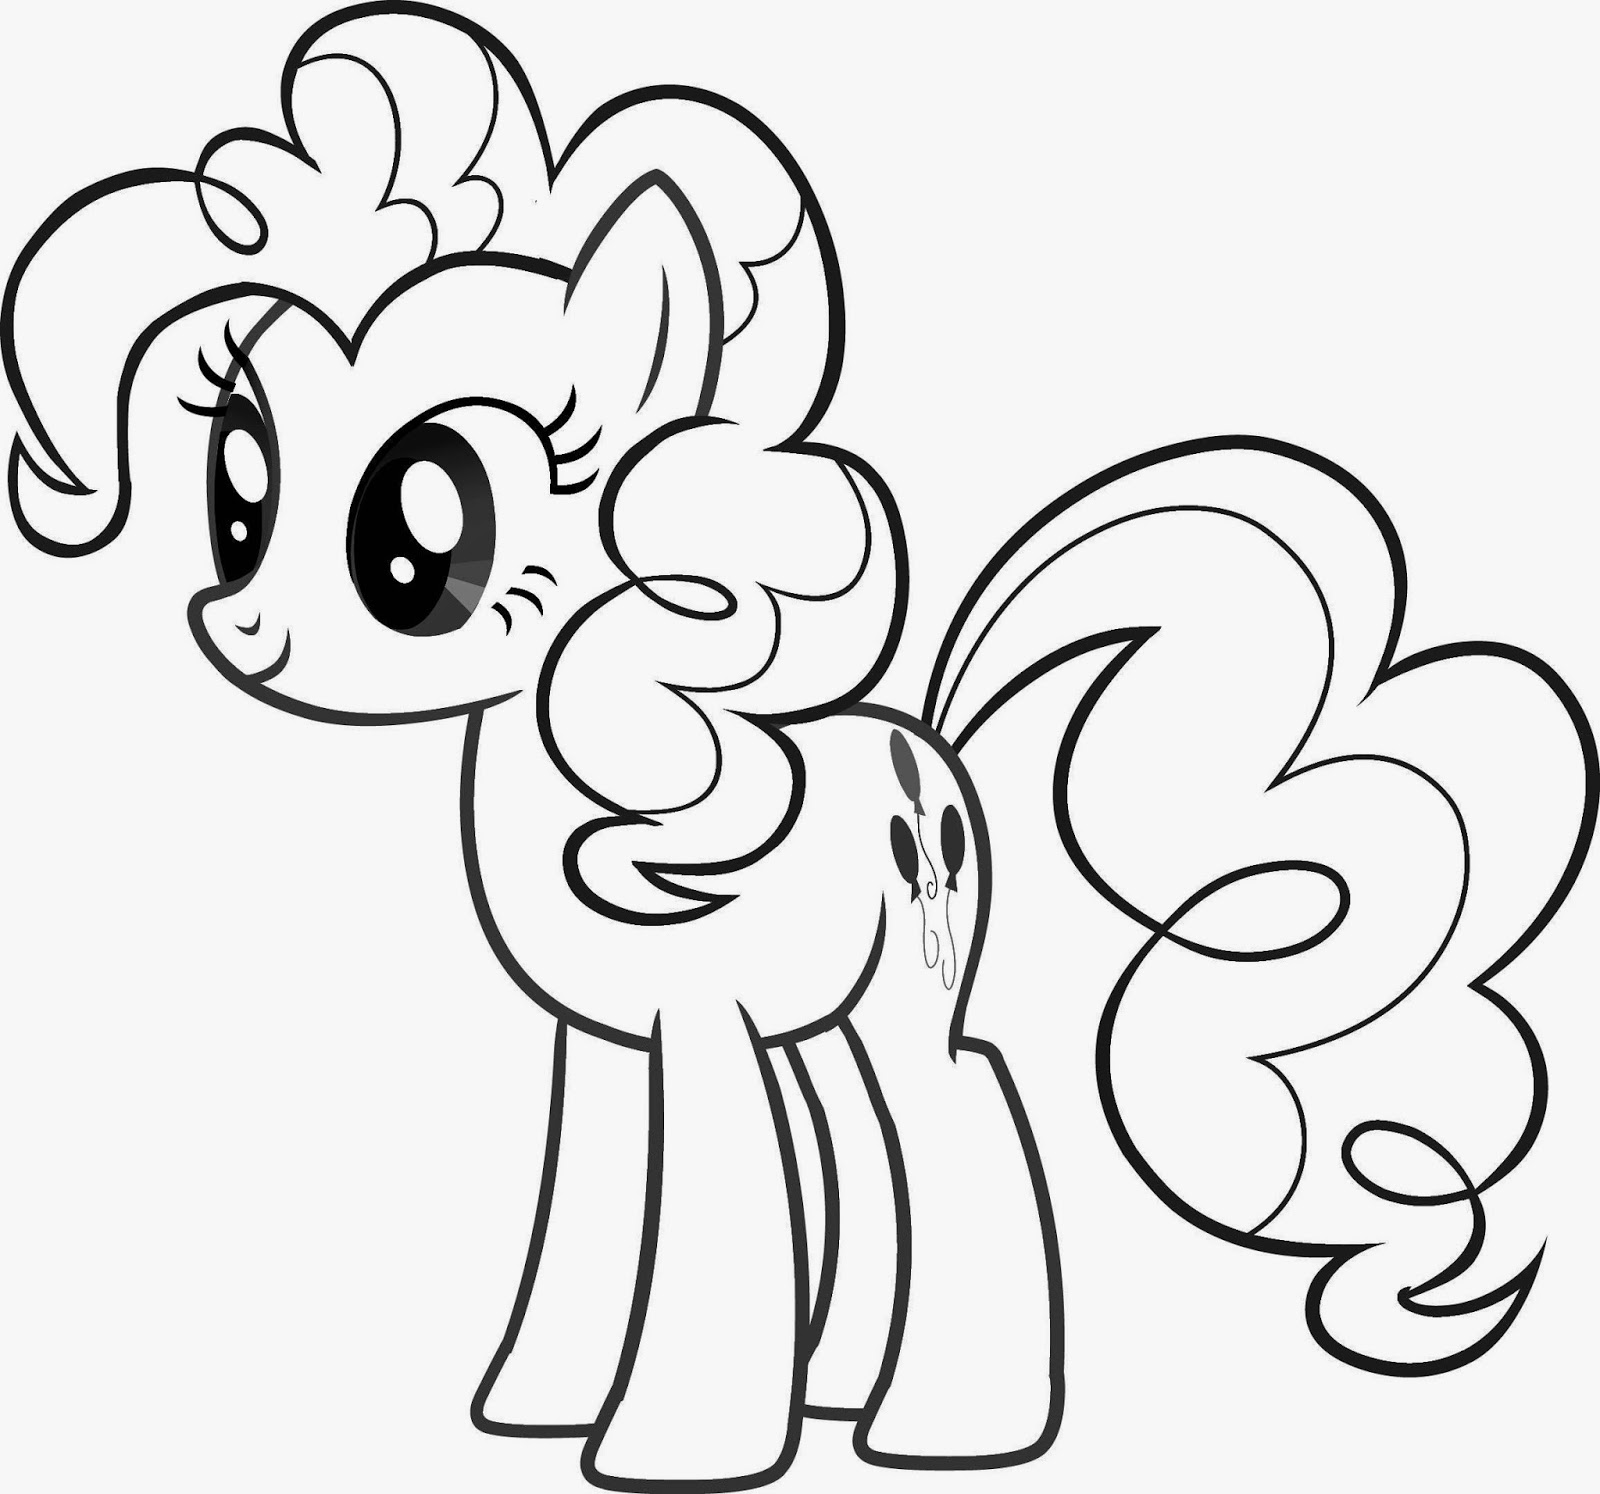 print unicorn coloring sheet unicorn coloring pages to download and print for free unicorn print coloring sheet